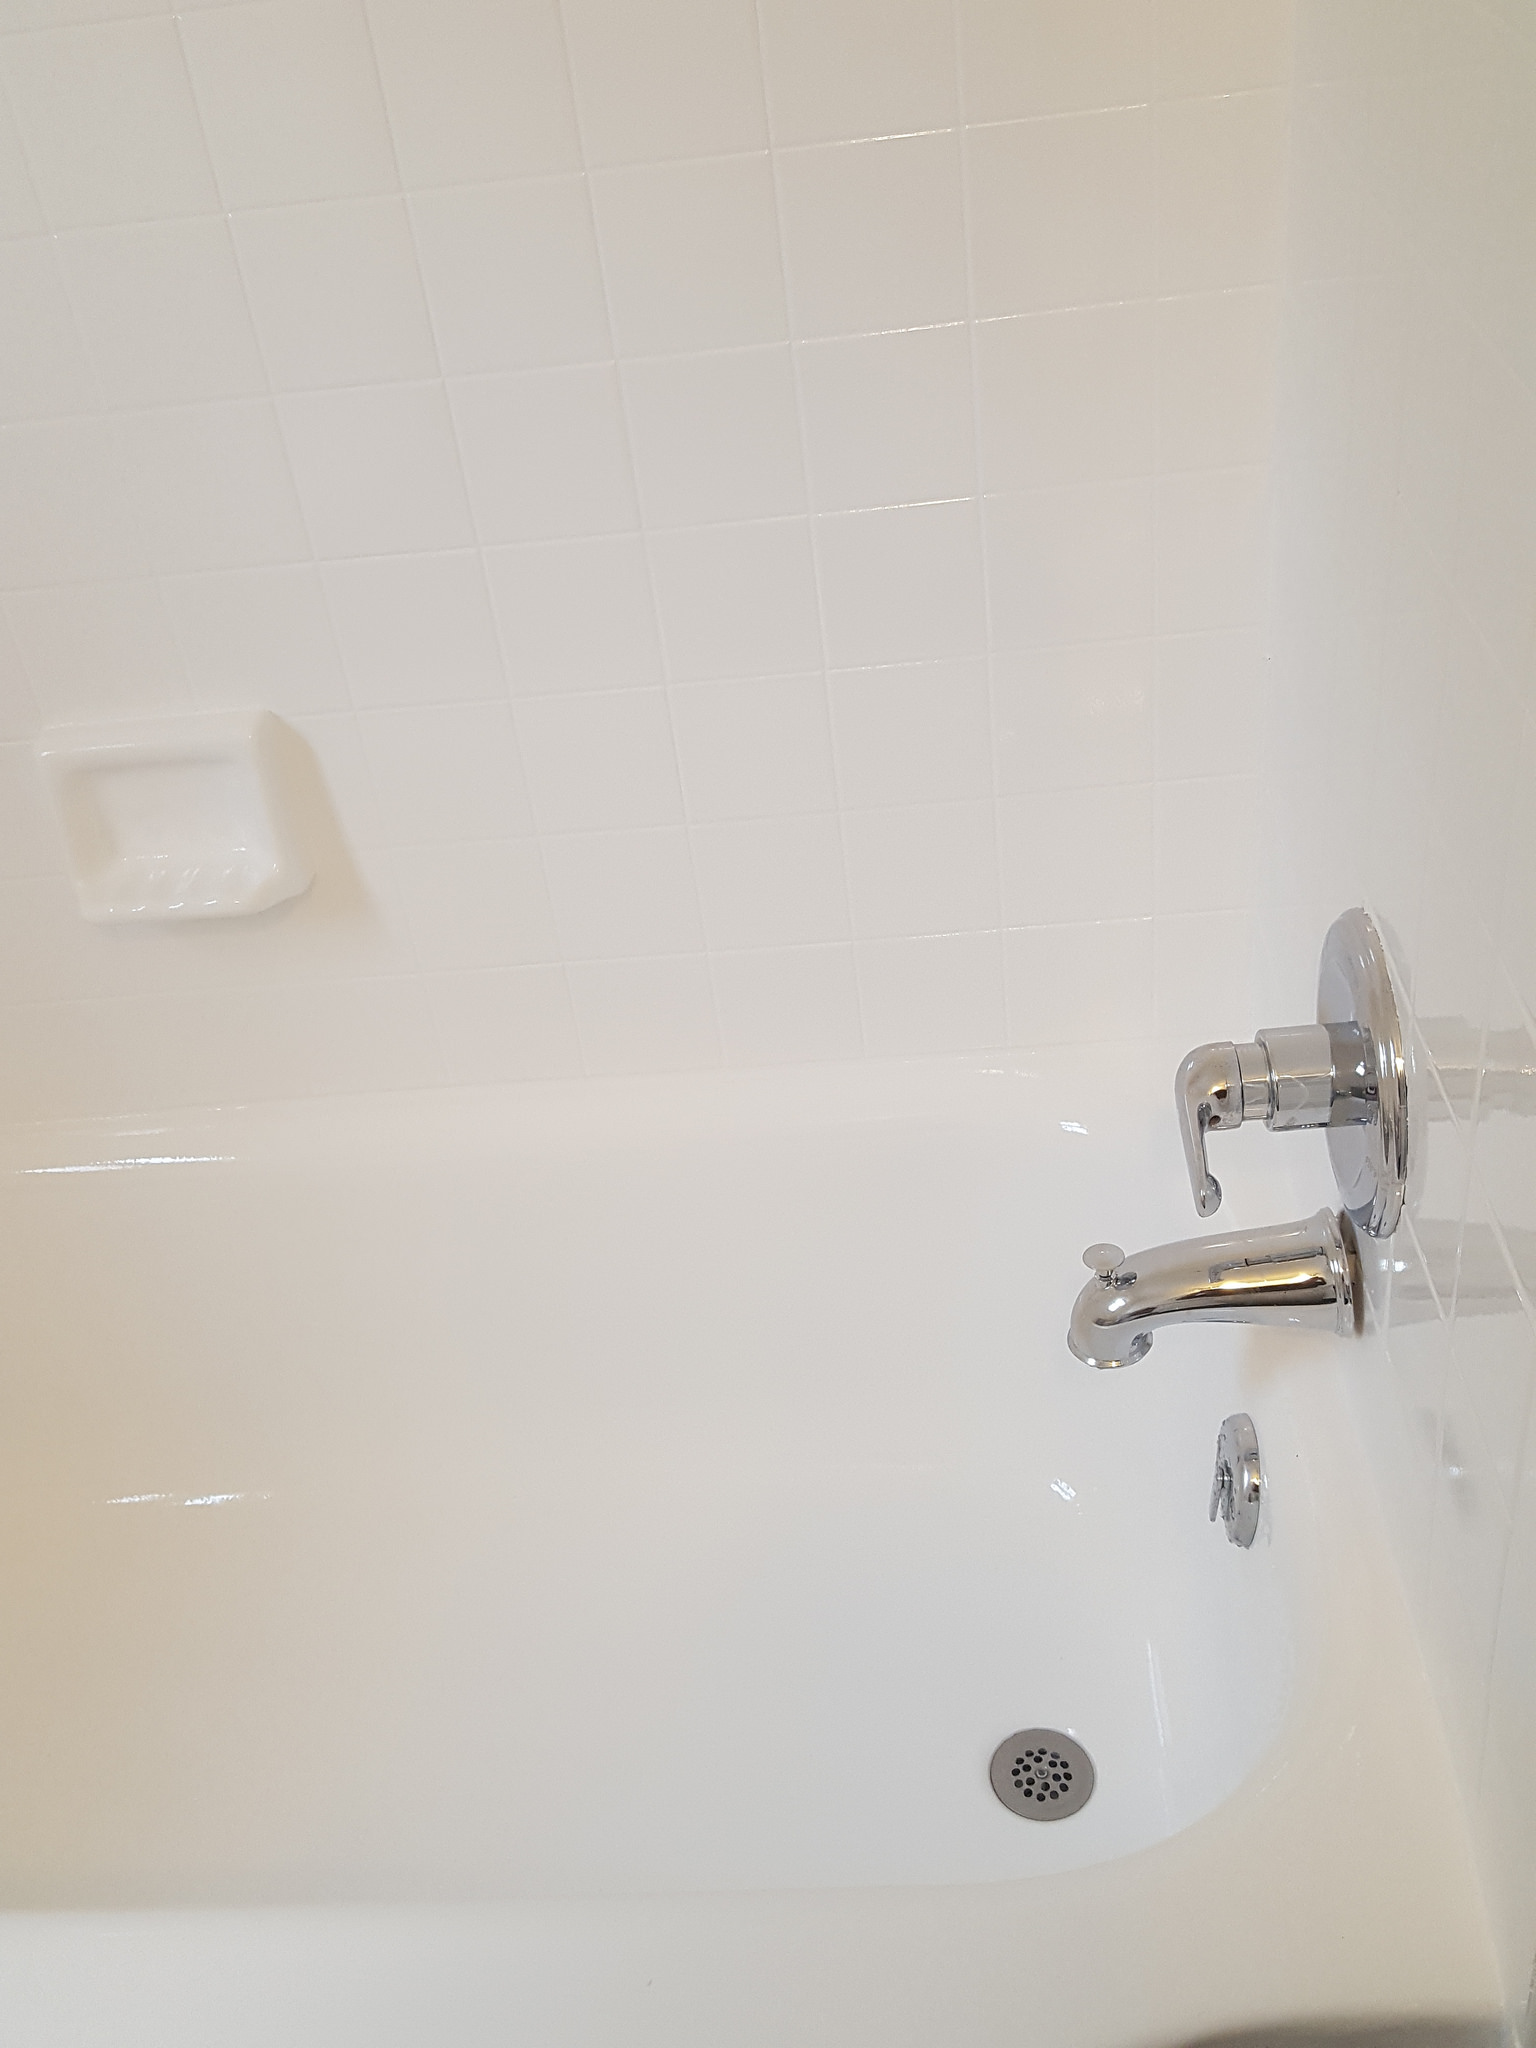 Home Bathtub Refinishing - Bathtub restoration companies